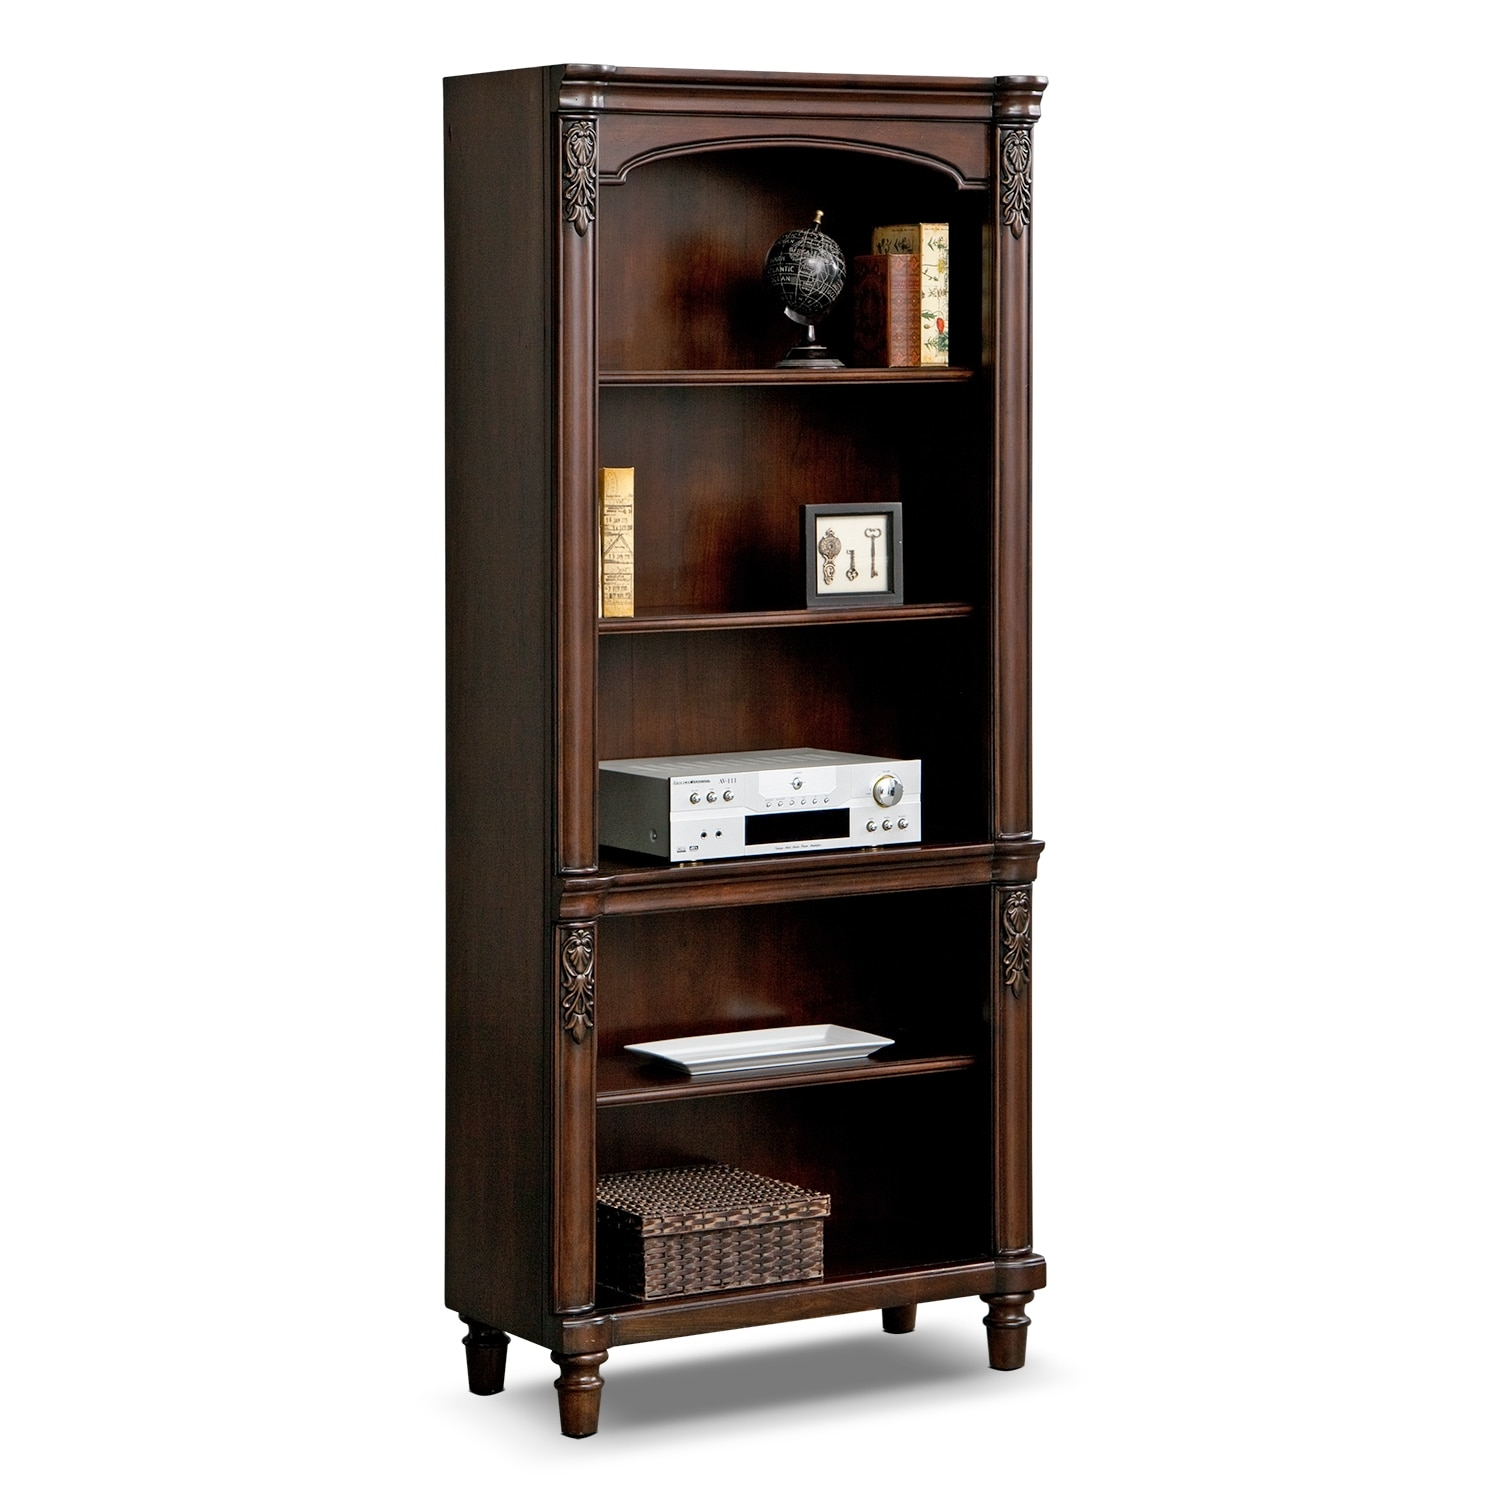 Bookcases living room storage cabinets american signature furniture - Small space bookshelf collection ...